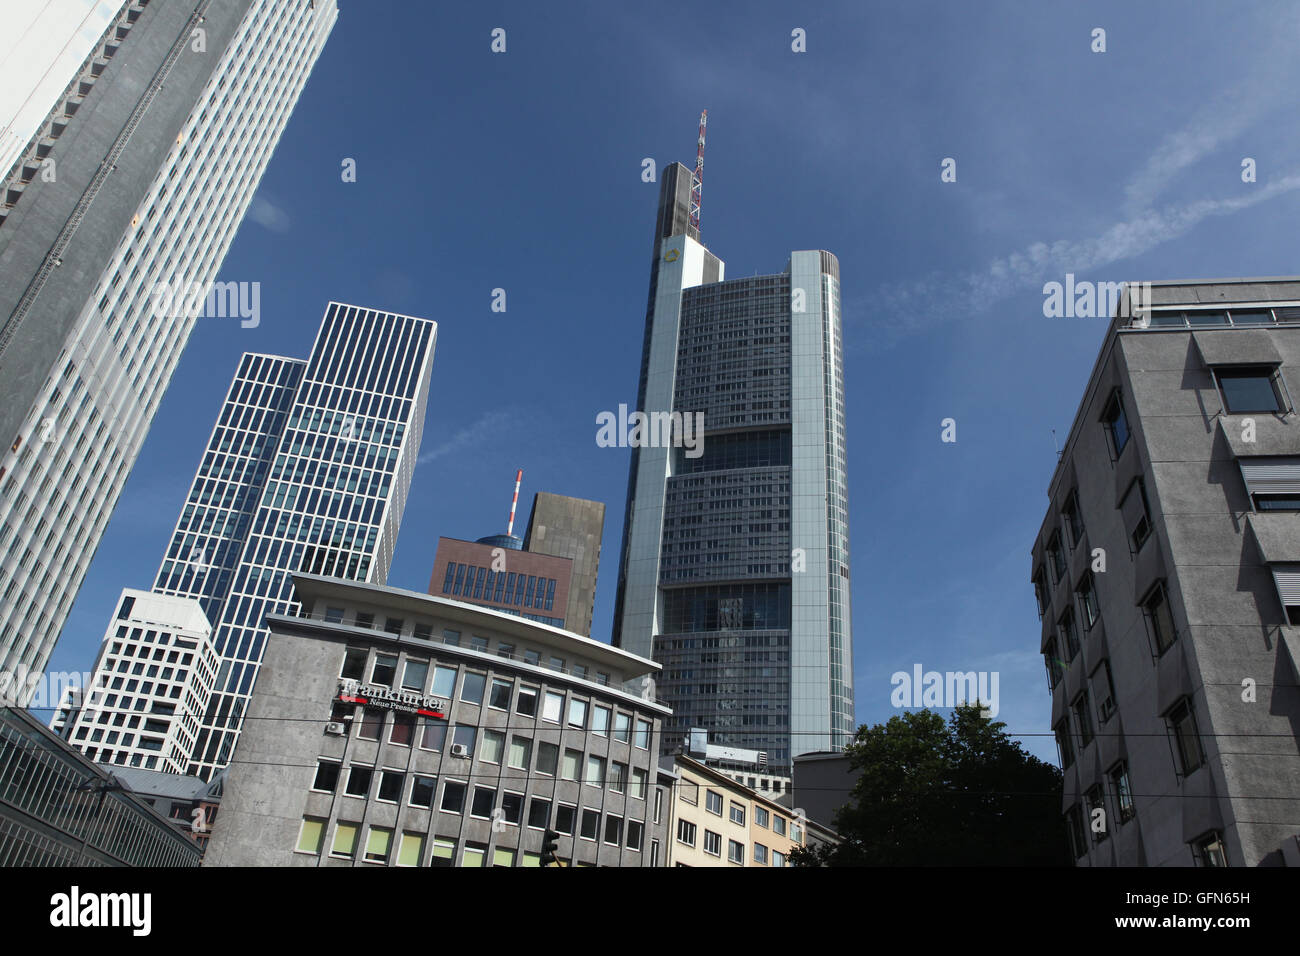 Commerzbank Tower designed by Norman Foster in the Bankenviertel (banking district) in Frankfurt am Main, Hesse, - Stock Image